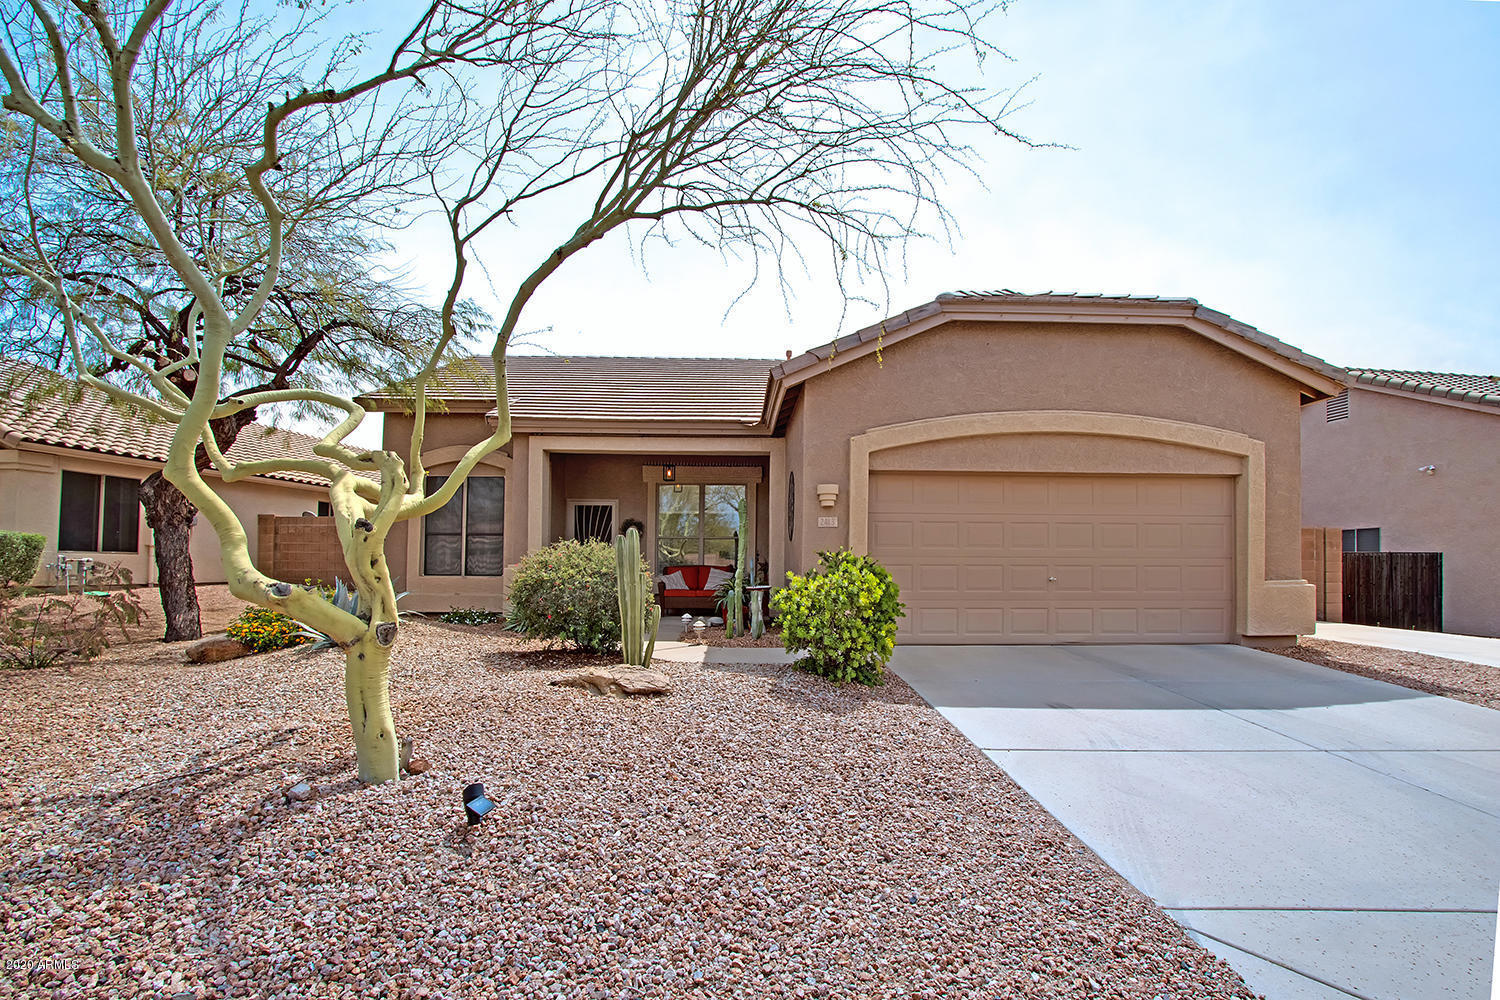 Photo of 2413 N MALACHITE --, Mesa, AZ 85207